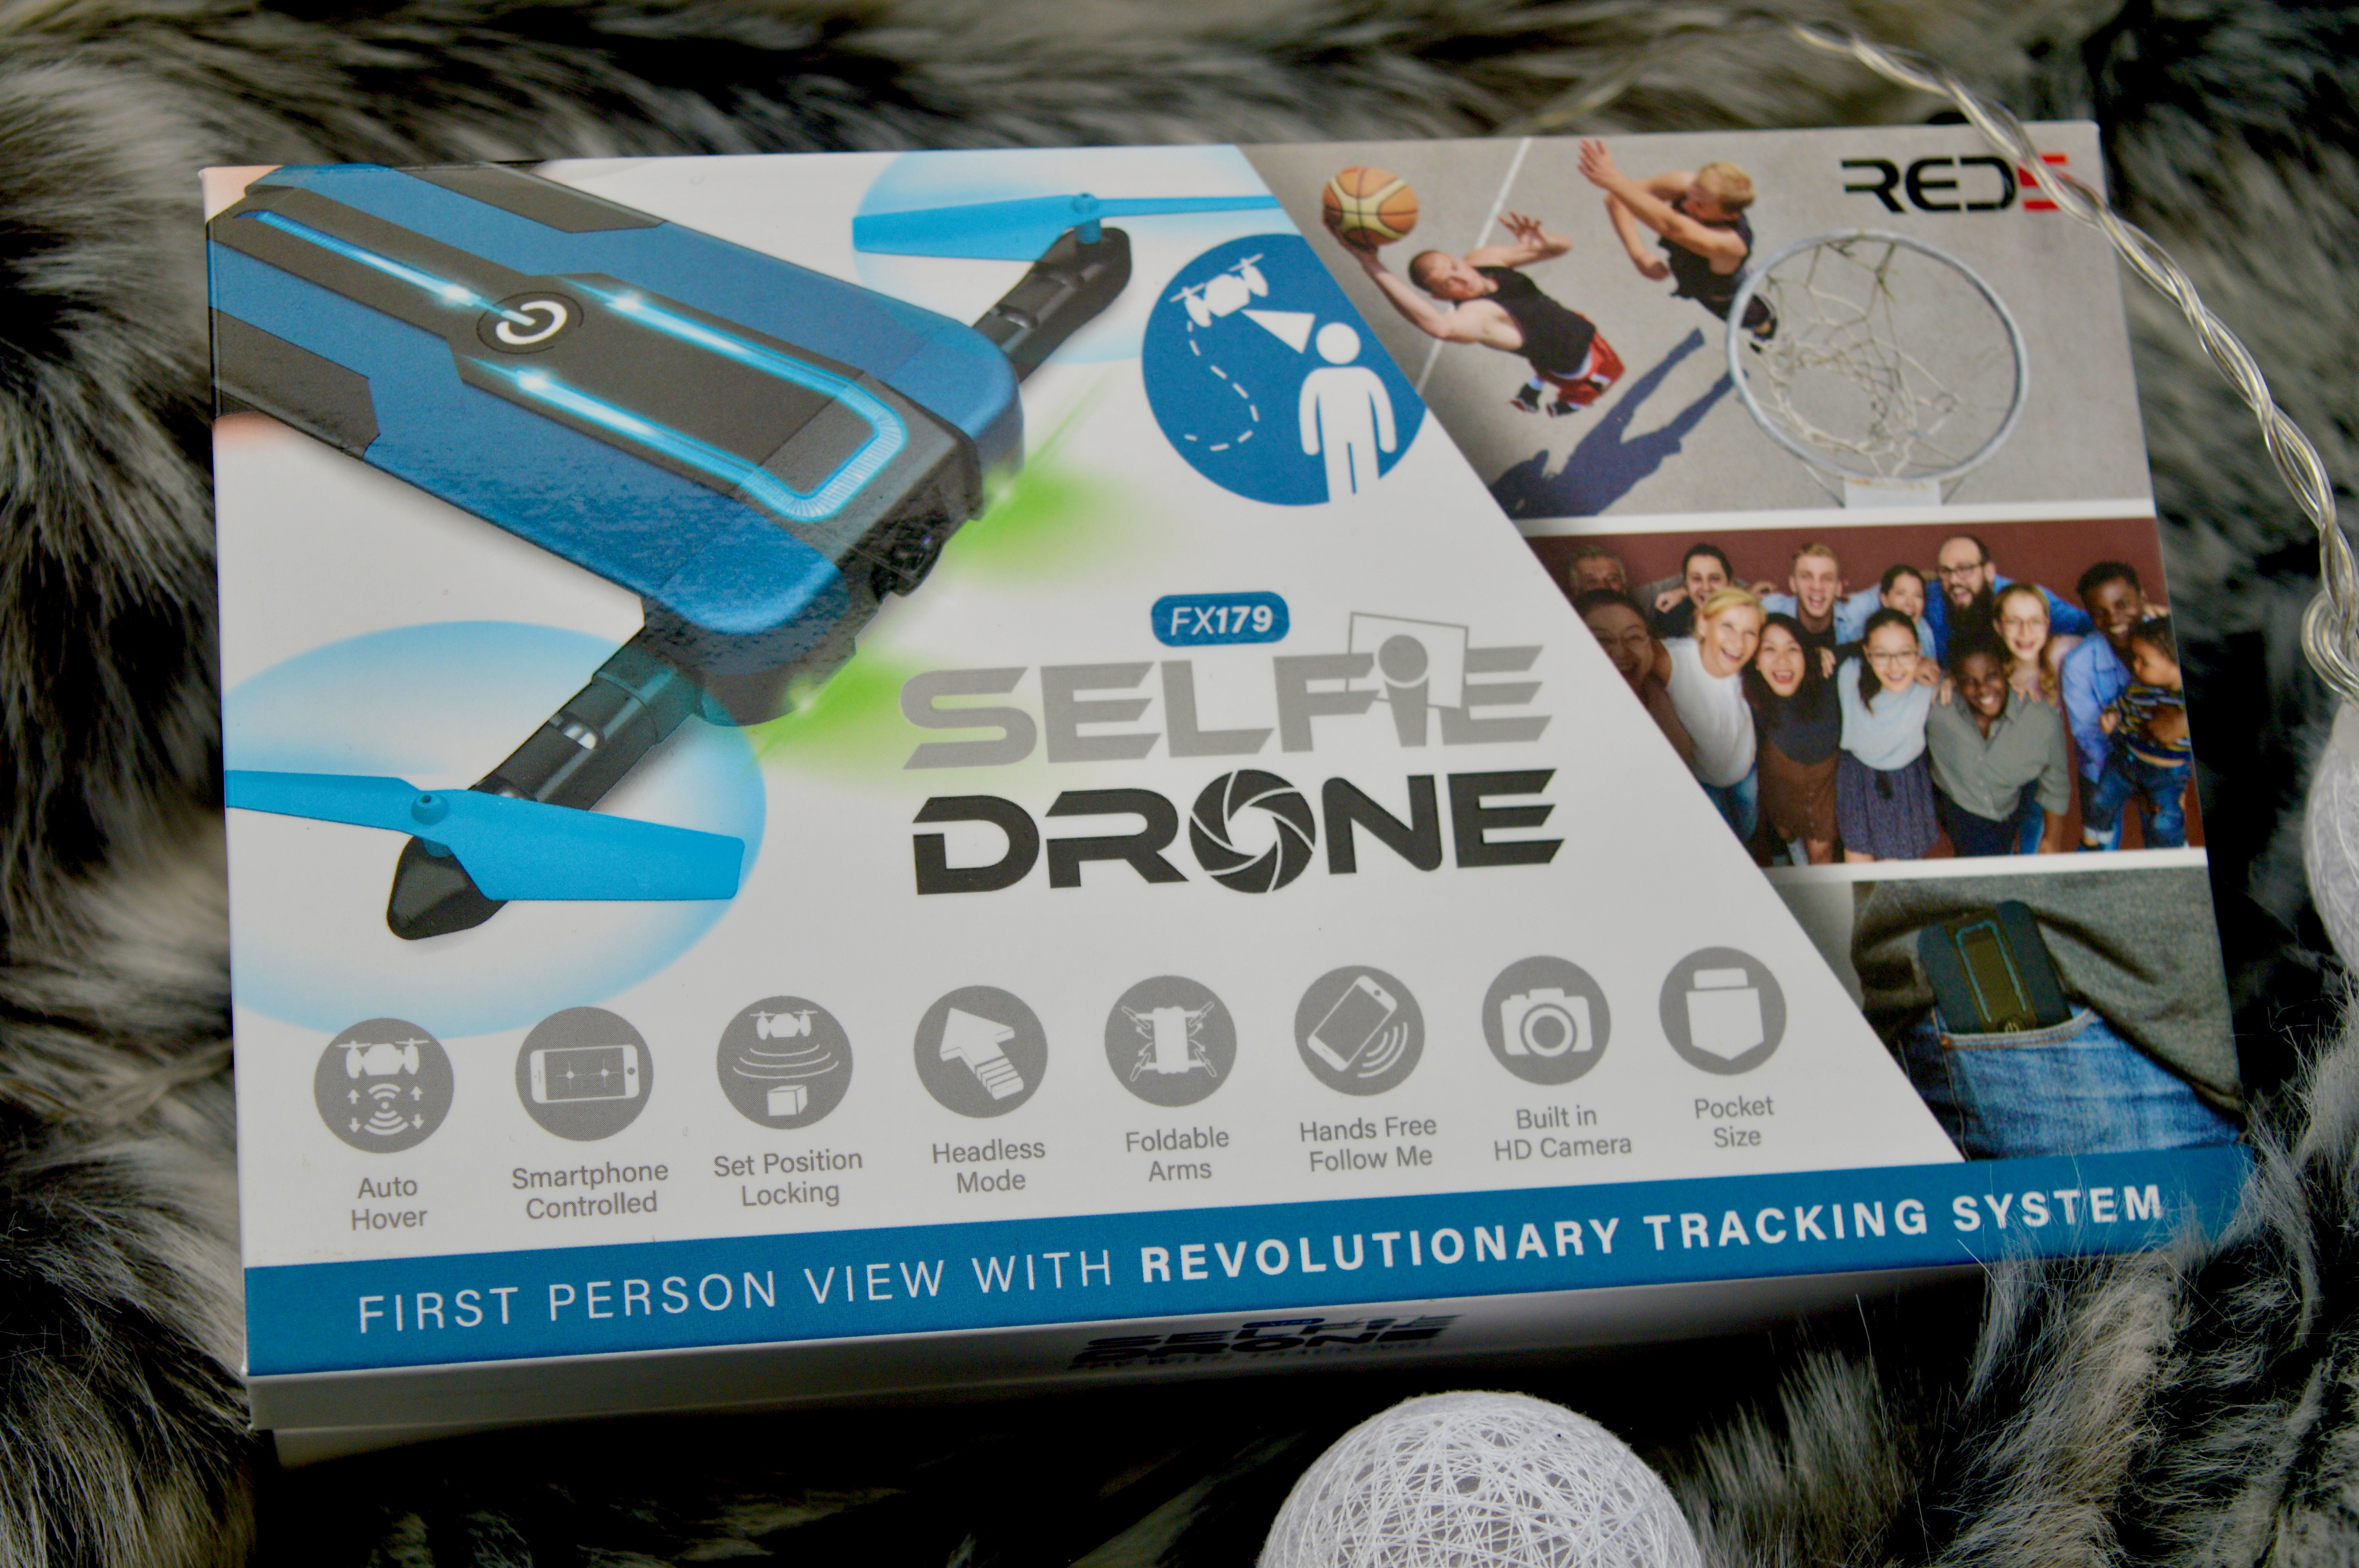 Selfie Drone | What to buy the person who has everything | Christmas Gift Guide - What to buy your Grandma | Elle Blonde Luxury Lifestyle Destination Blog